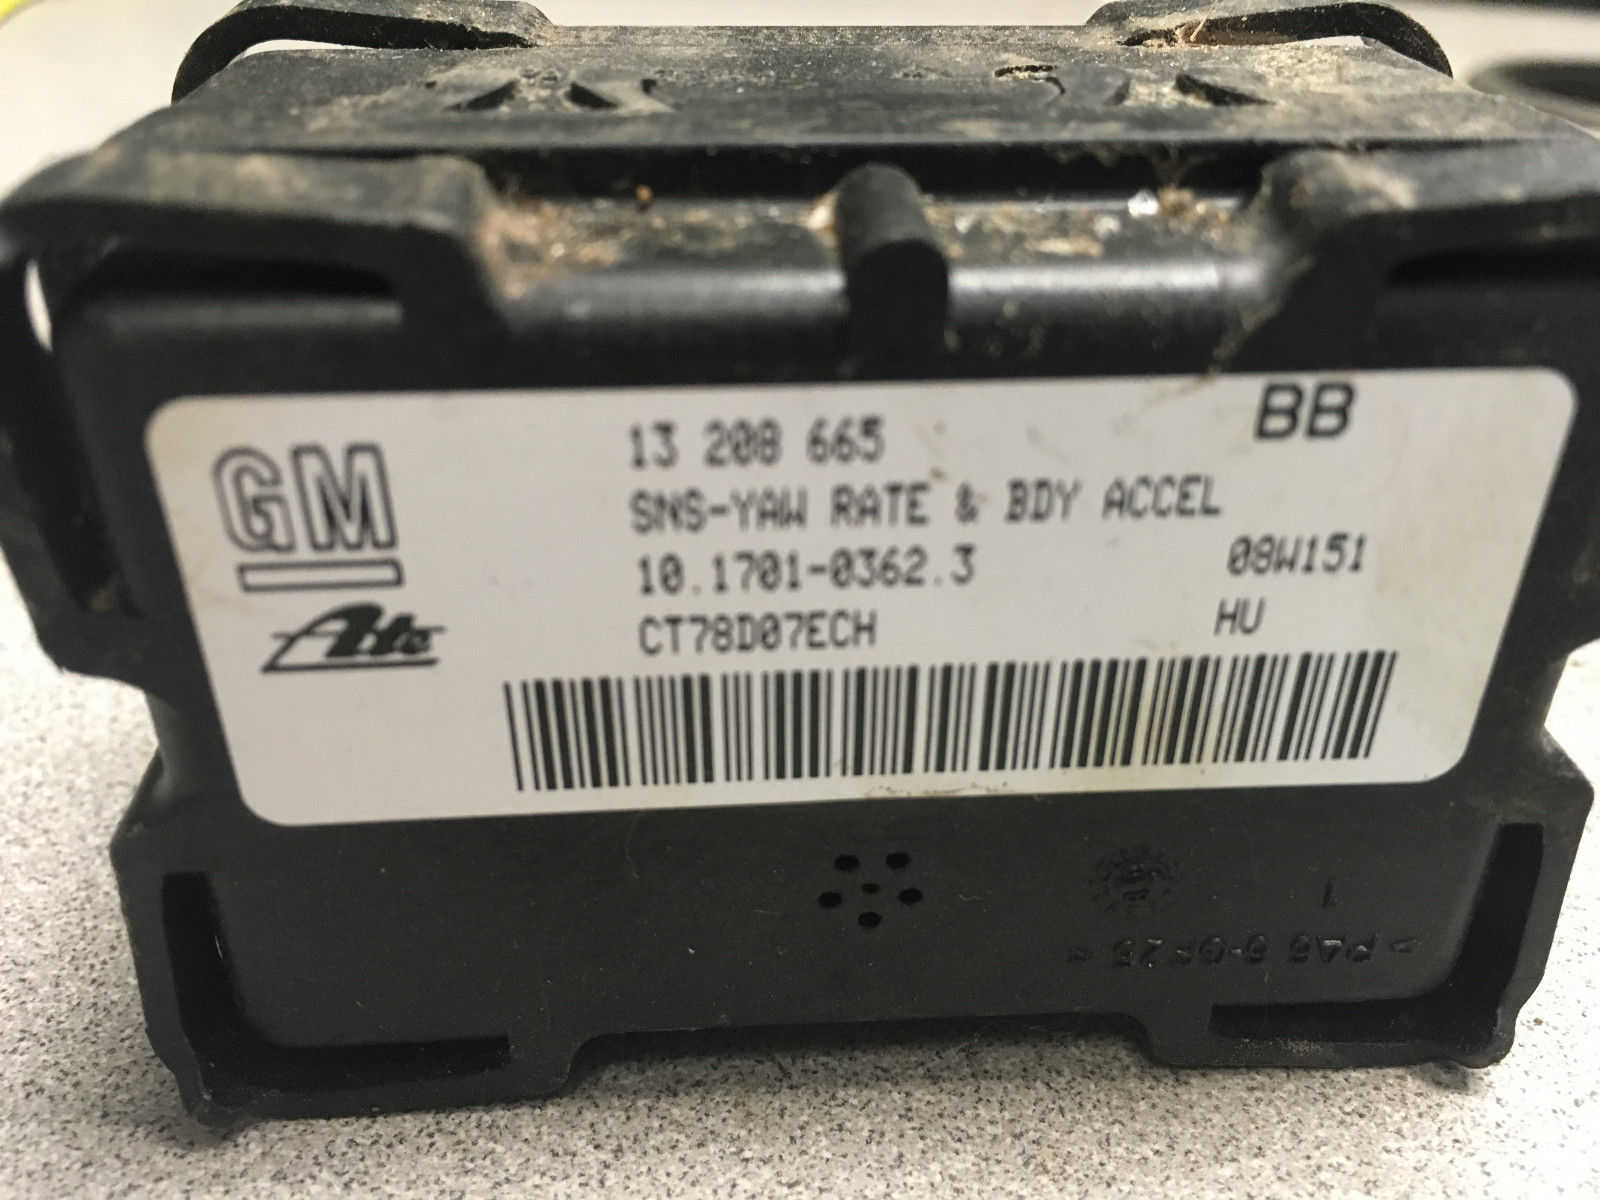 Saturn Astra YAW Rate Module P/N 13208665